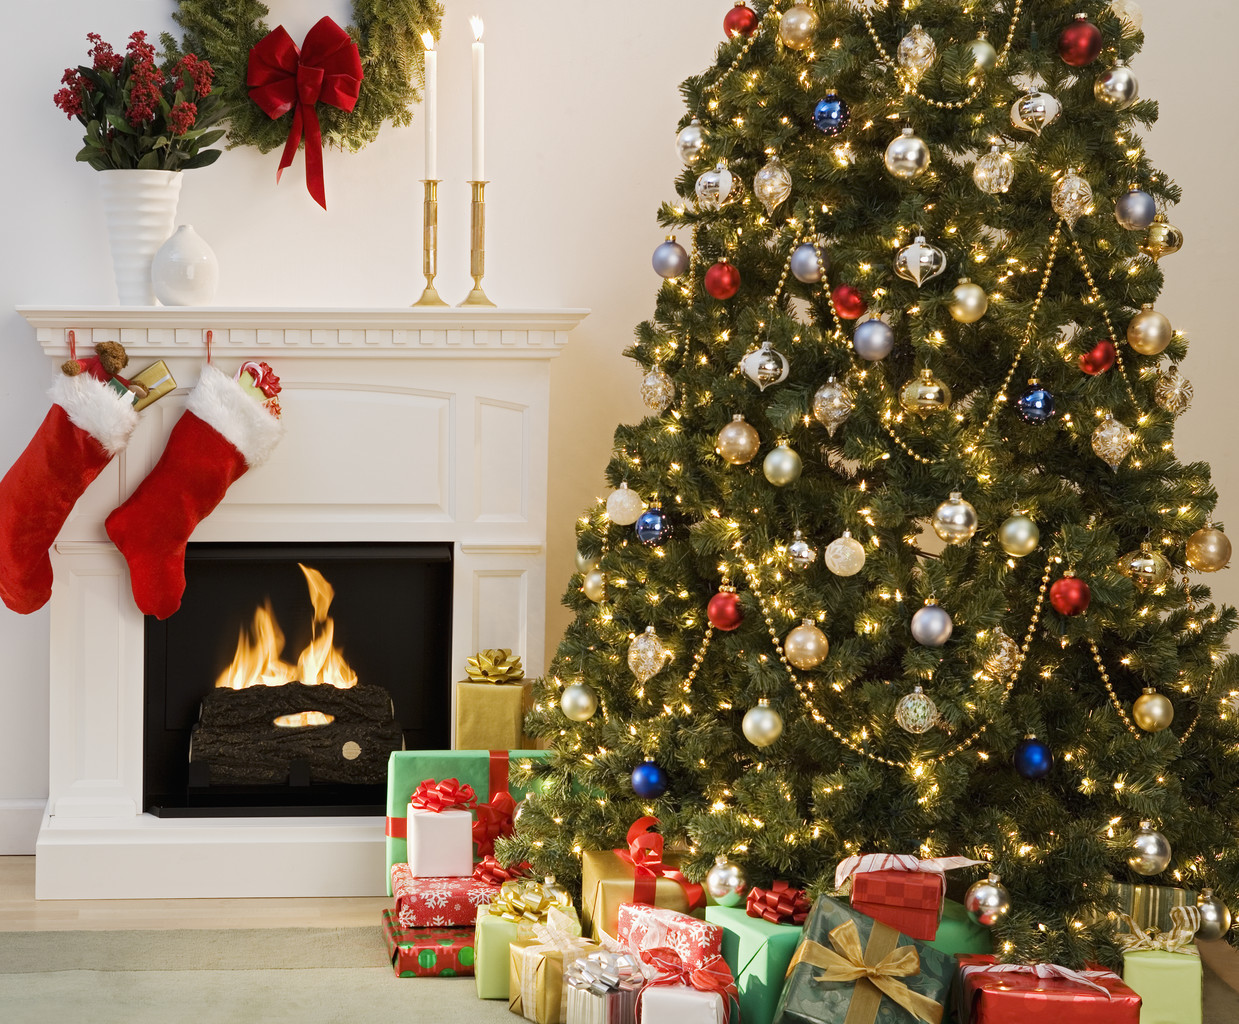 Christmas Tree With Presents And Fireplace With Stockings Altamont